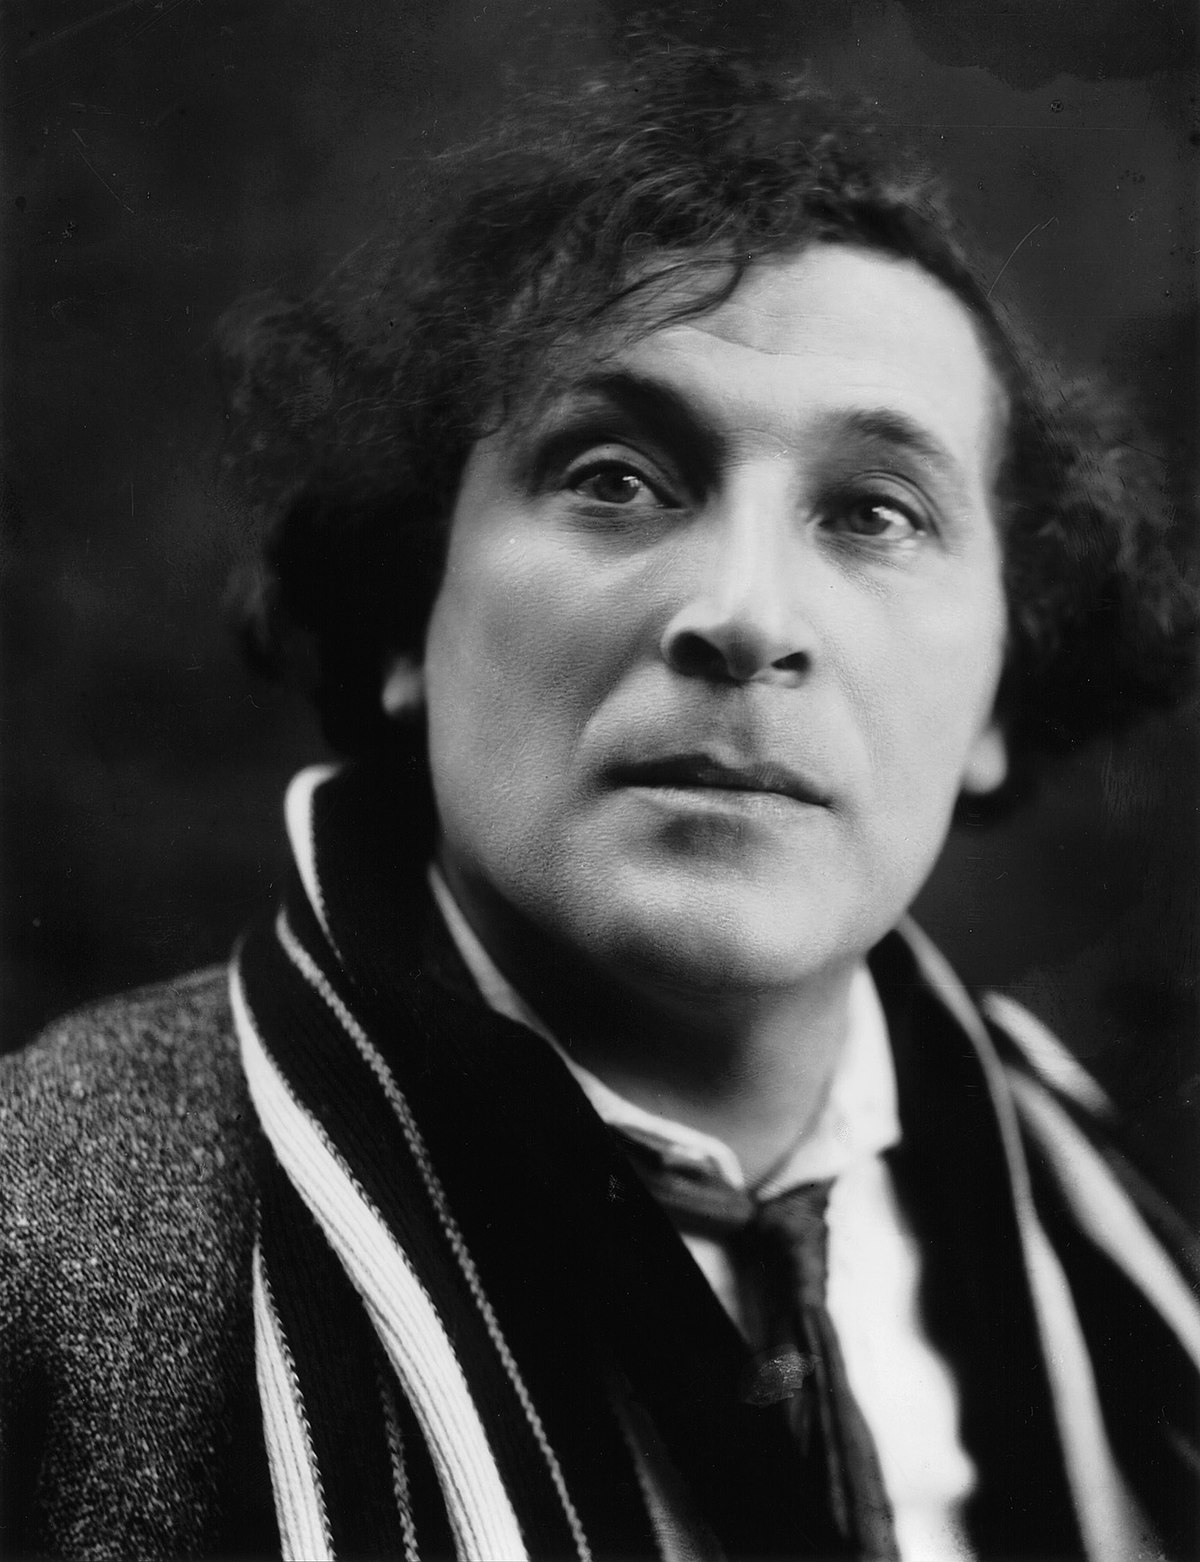 marc chagall wiki english : 5840 marc-chagall côte saint-luc qc h4w3k6 :  marc chagall interactive books en 2020/2021